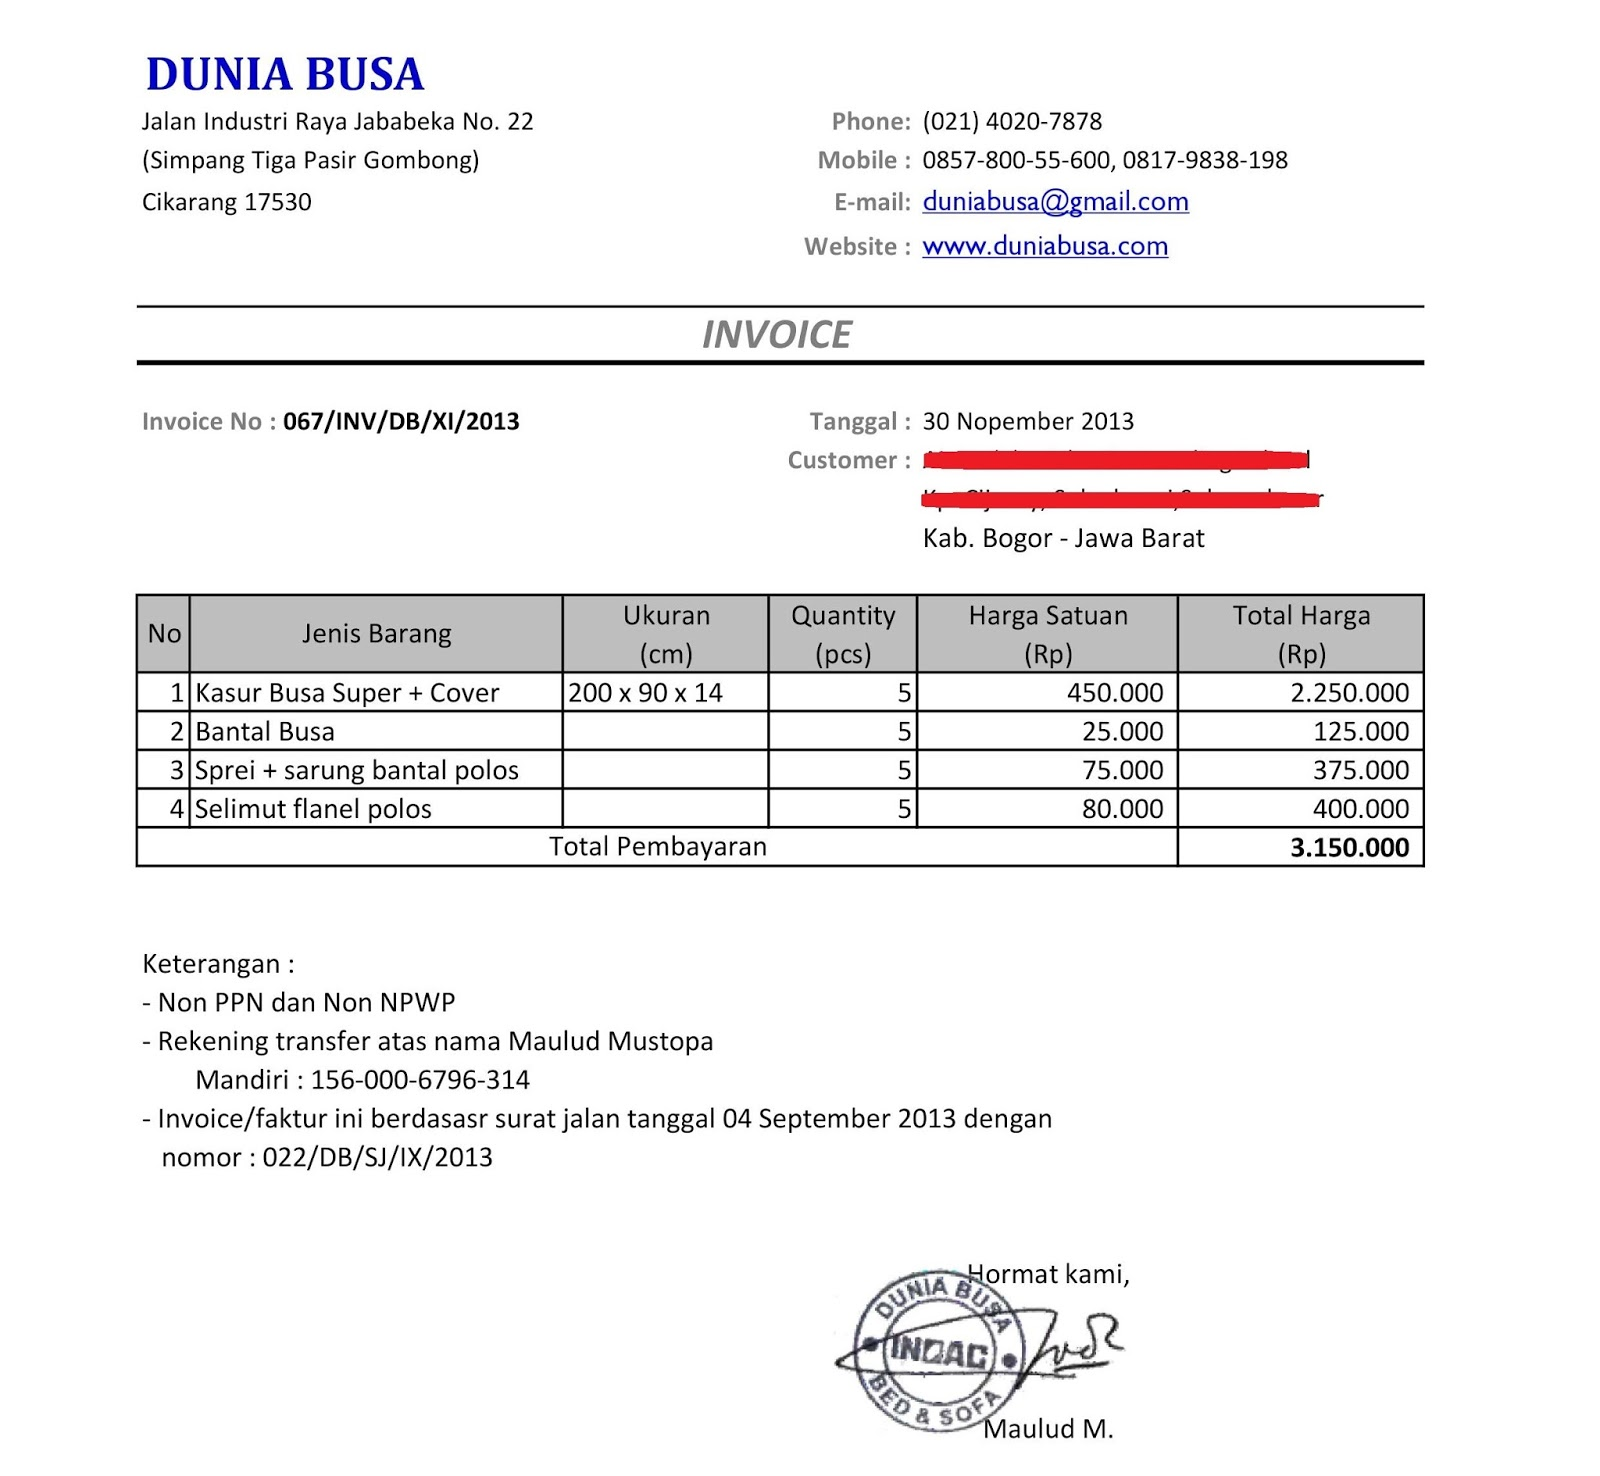 Centralasianshepherdus  Unusual Free Invoice Online  Create Invoice Online  Invoice Template  With Hot Contoh Format Invoice Atau Surat Tagihan  Brankas Arsip  Free Invoice Online With Enchanting Film Invoice Template Also Payment On The Invoice In Addition Stripe Invoicing And Dell Invoices As Well As Sap Invoice Transaction Code Additionally Paypal Buyer Protection Invoice From Sklepco With Centralasianshepherdus  Hot Free Invoice Online  Create Invoice Online  Invoice Template  With Enchanting Contoh Format Invoice Atau Surat Tagihan  Brankas Arsip  Free Invoice Online And Unusual Film Invoice Template Also Payment On The Invoice In Addition Stripe Invoicing From Sklepco